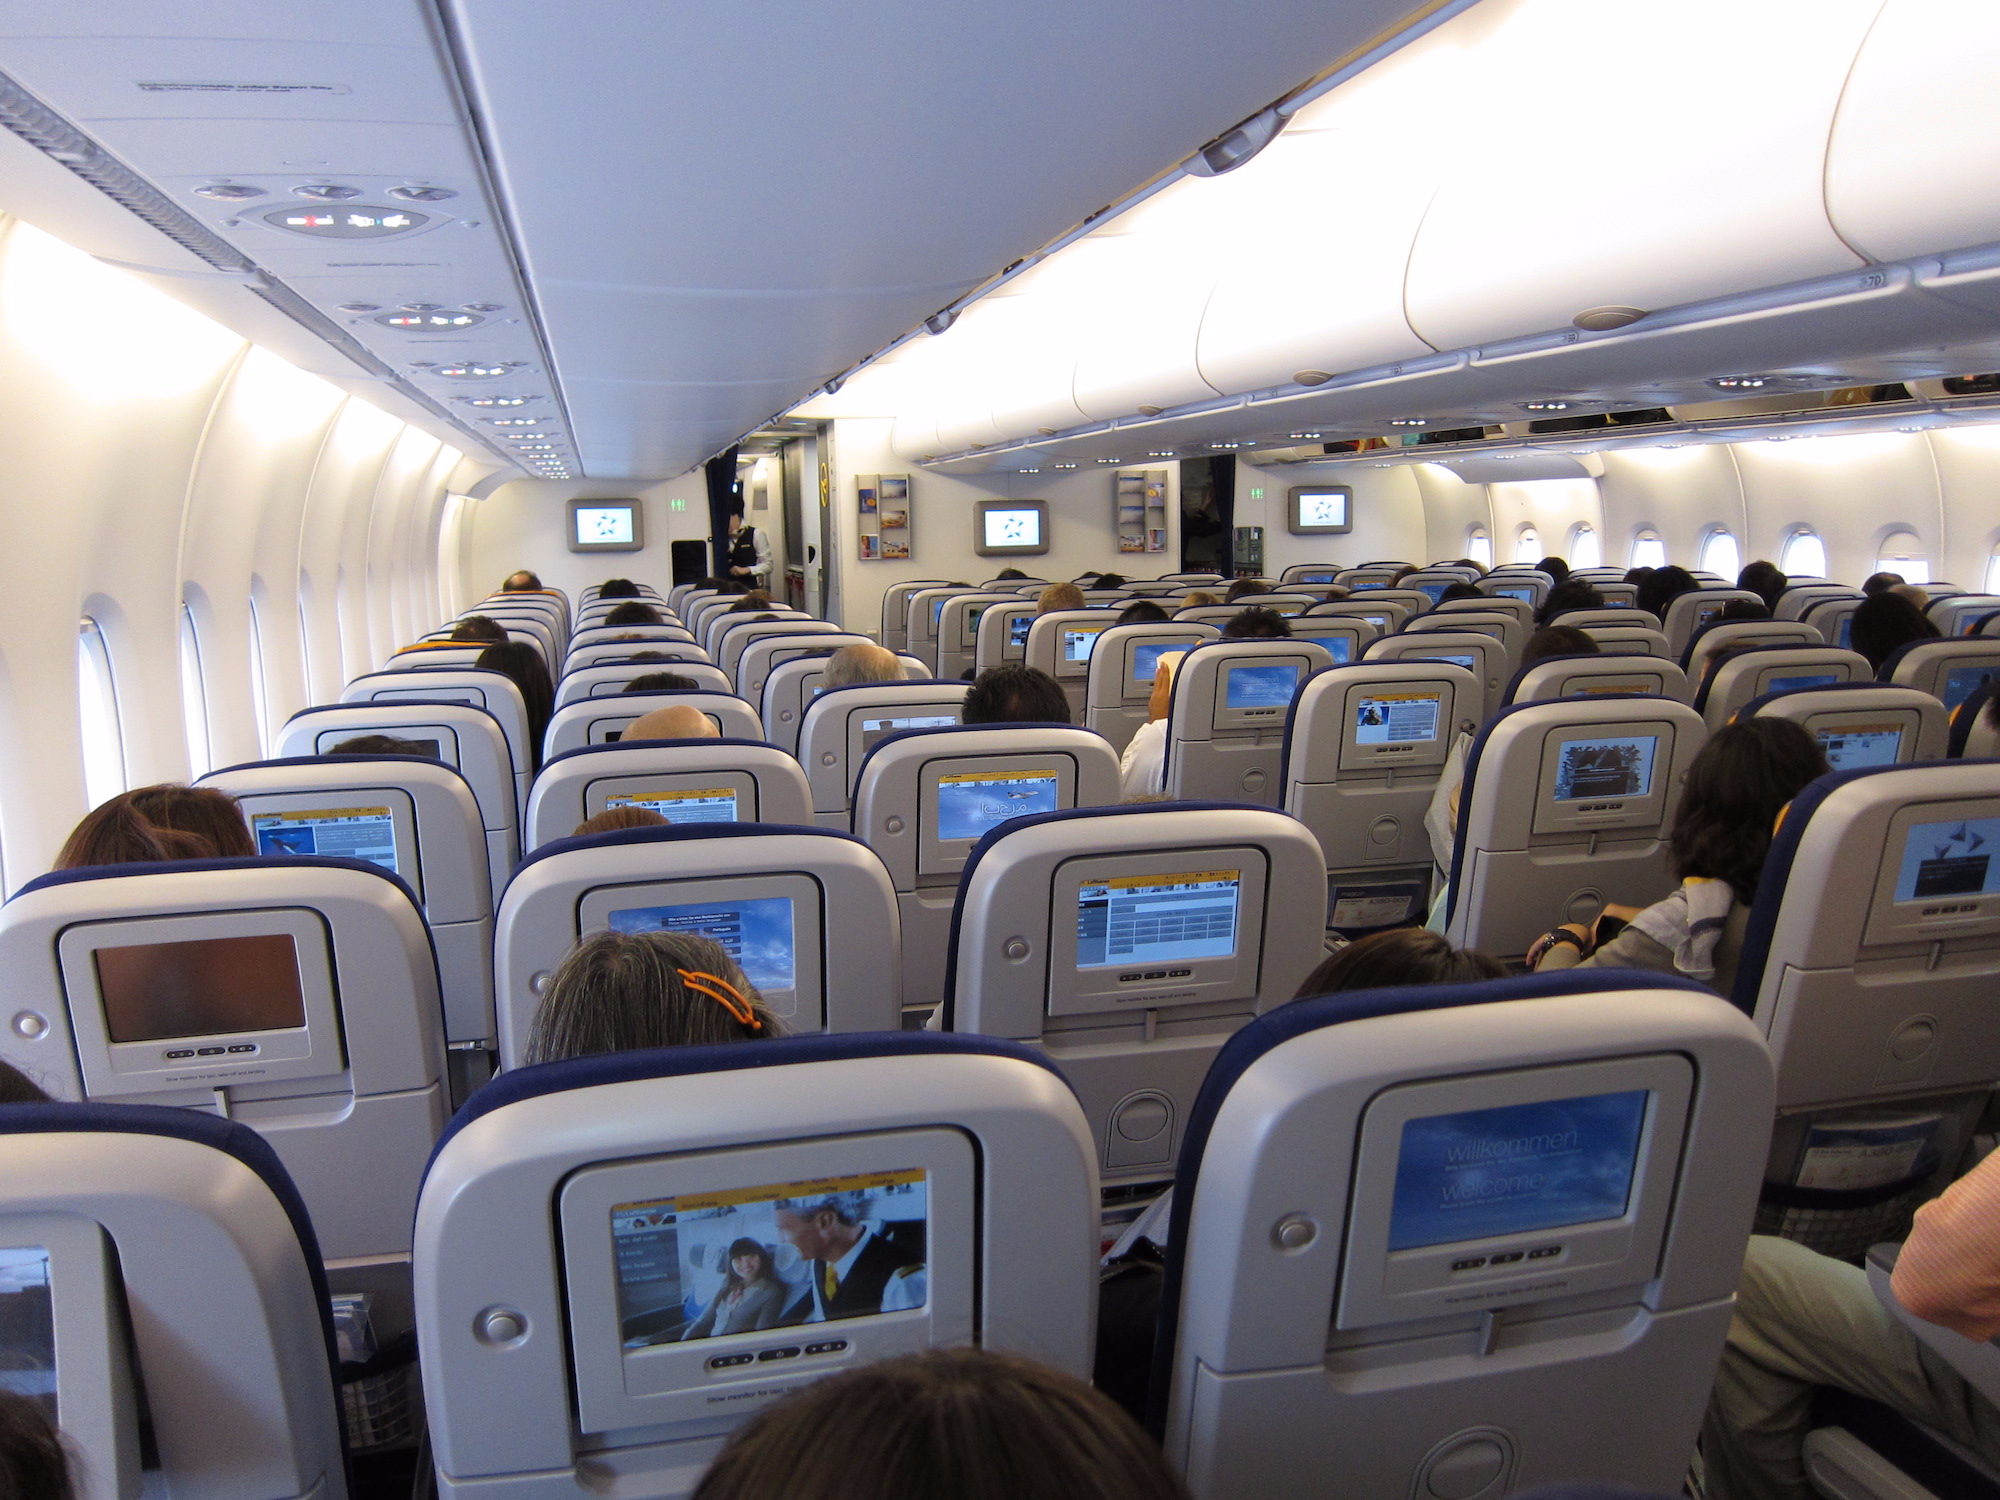 Airplane Etiquette: Be a Friendly Flyer